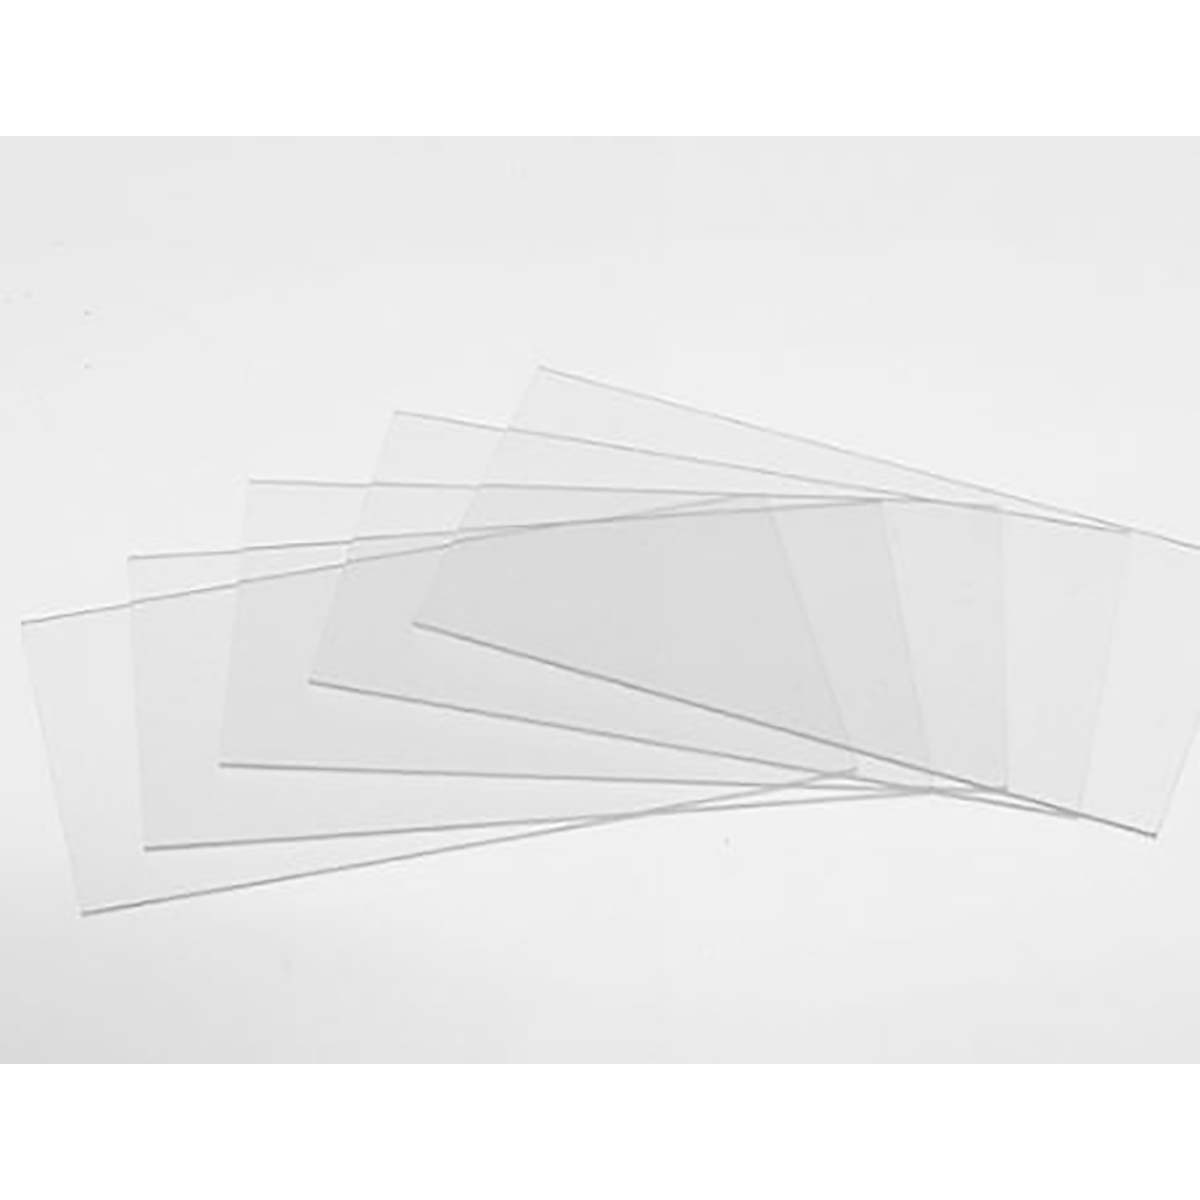 Inside cover plate - expert & pro series (5 pack)